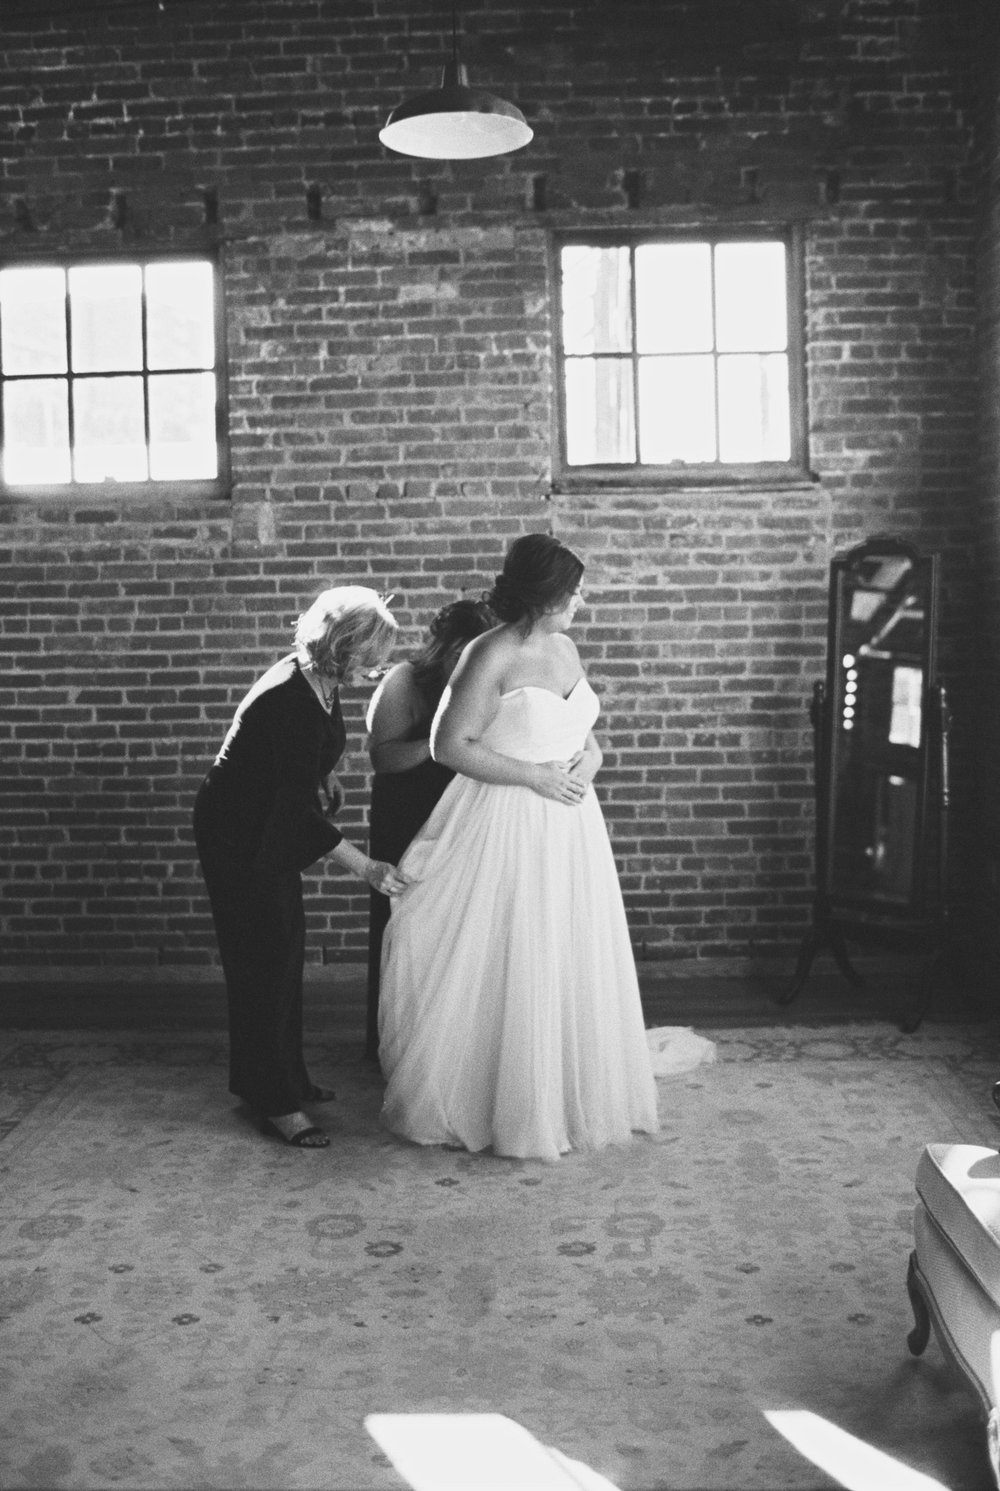 Lauren_Jeremy_Standard_Wedding_Knoxville_Abigail_Malone_Photography_FIlm-77.jpg